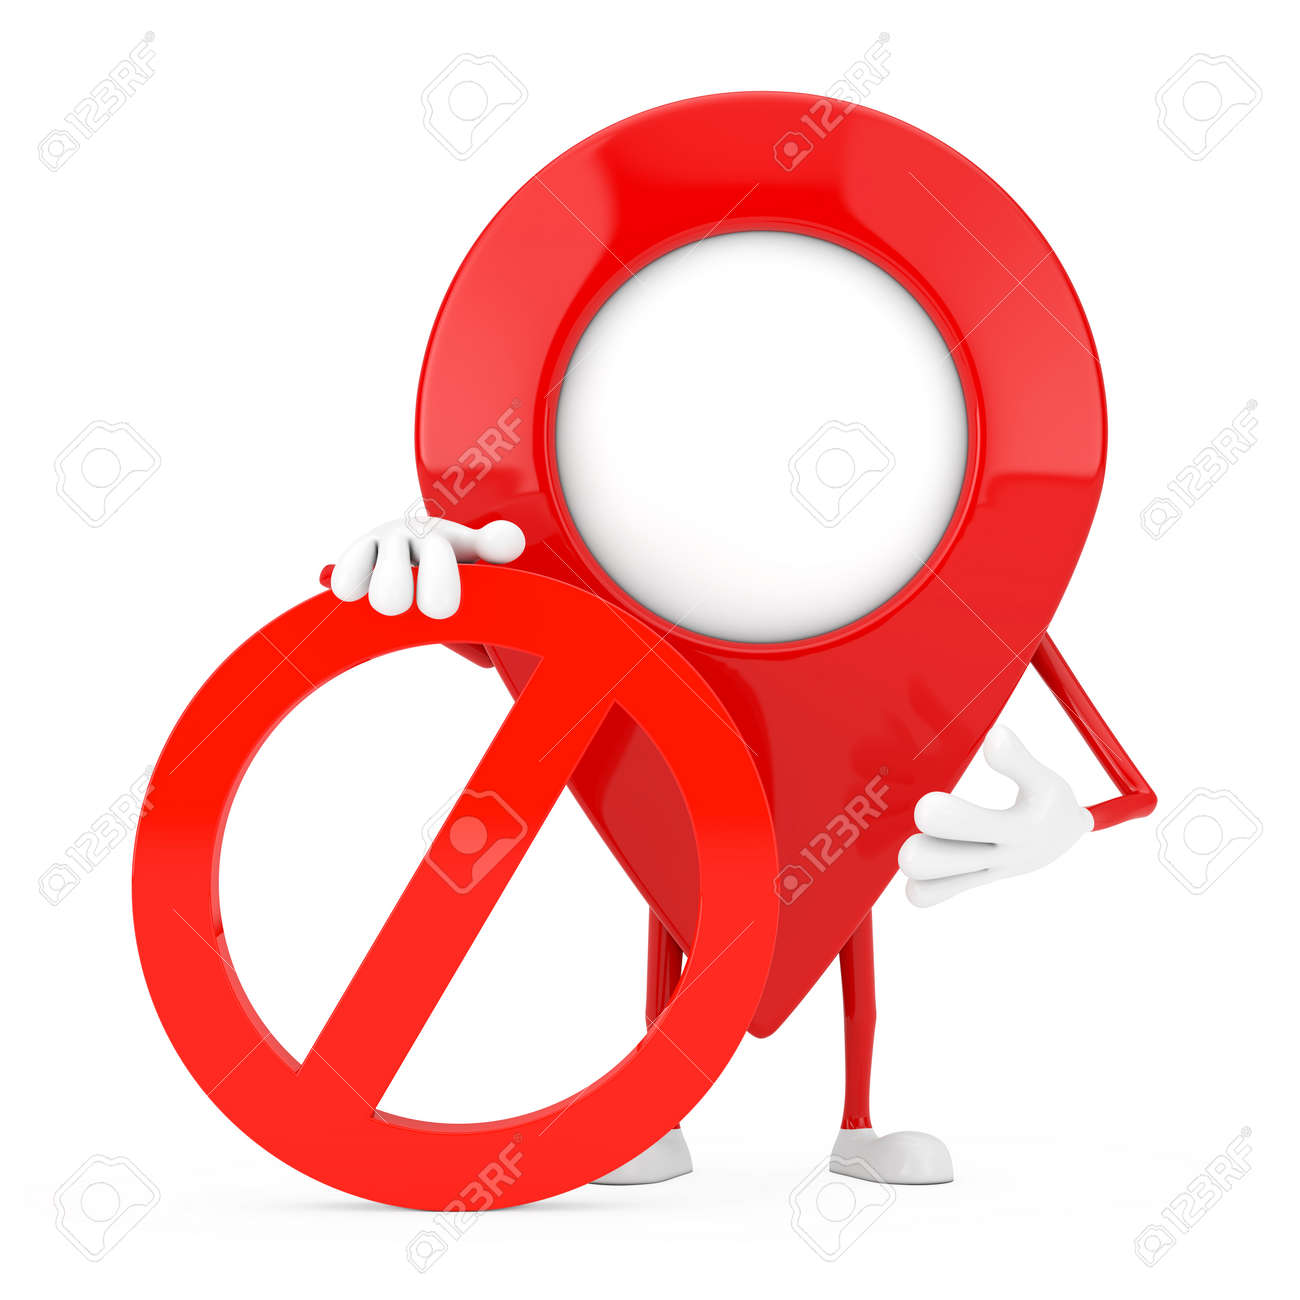 Map Pointer Pin Person Character Mascot with Red Prohibition or Forbidden Sign on a white background. 3d Rendering - 168173121